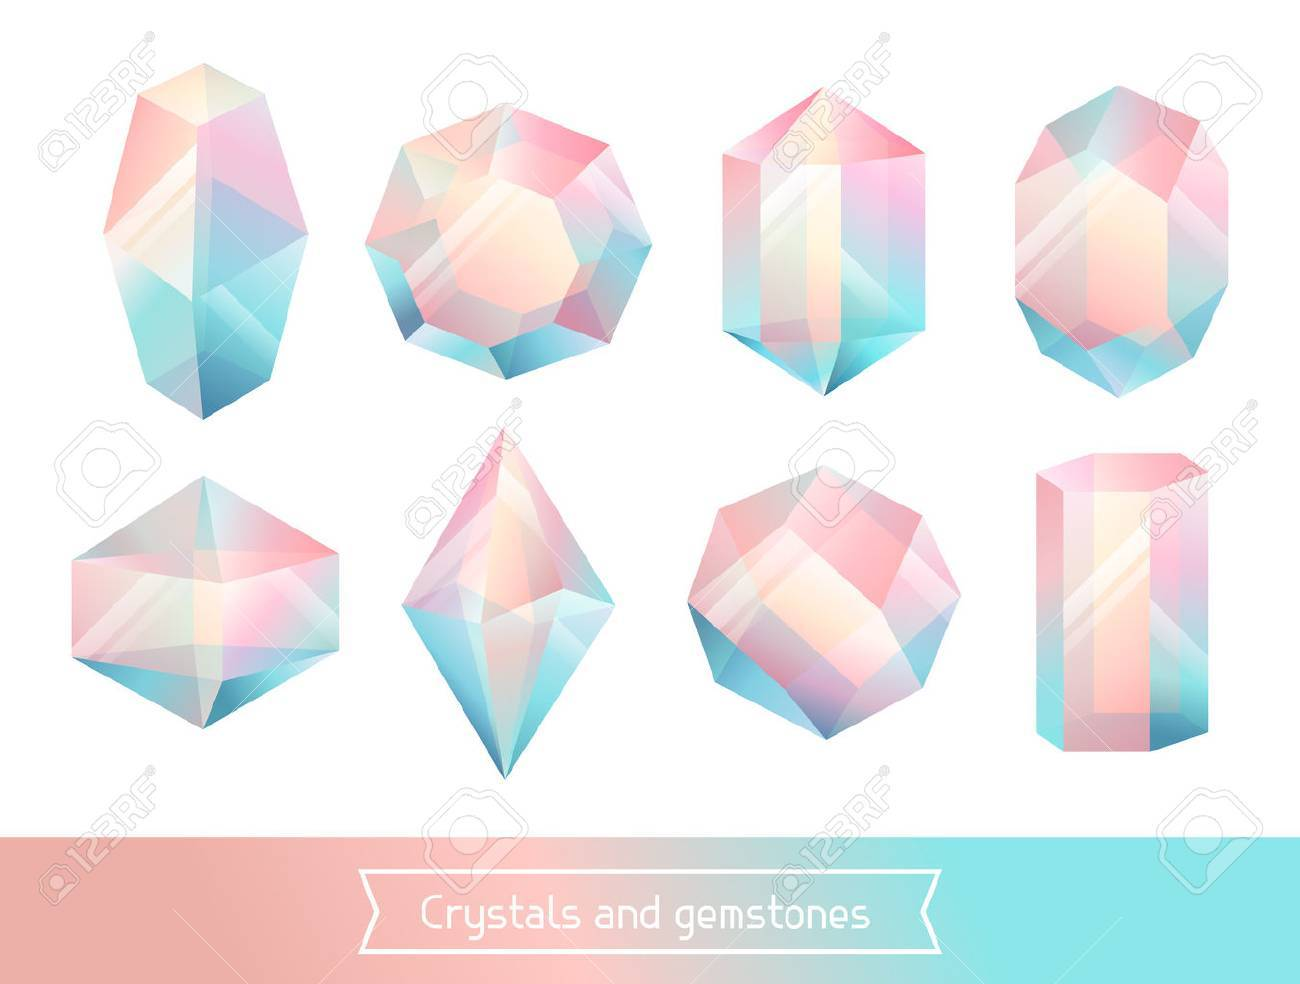 Set of geometric crystals gem and minerals. - 55229680